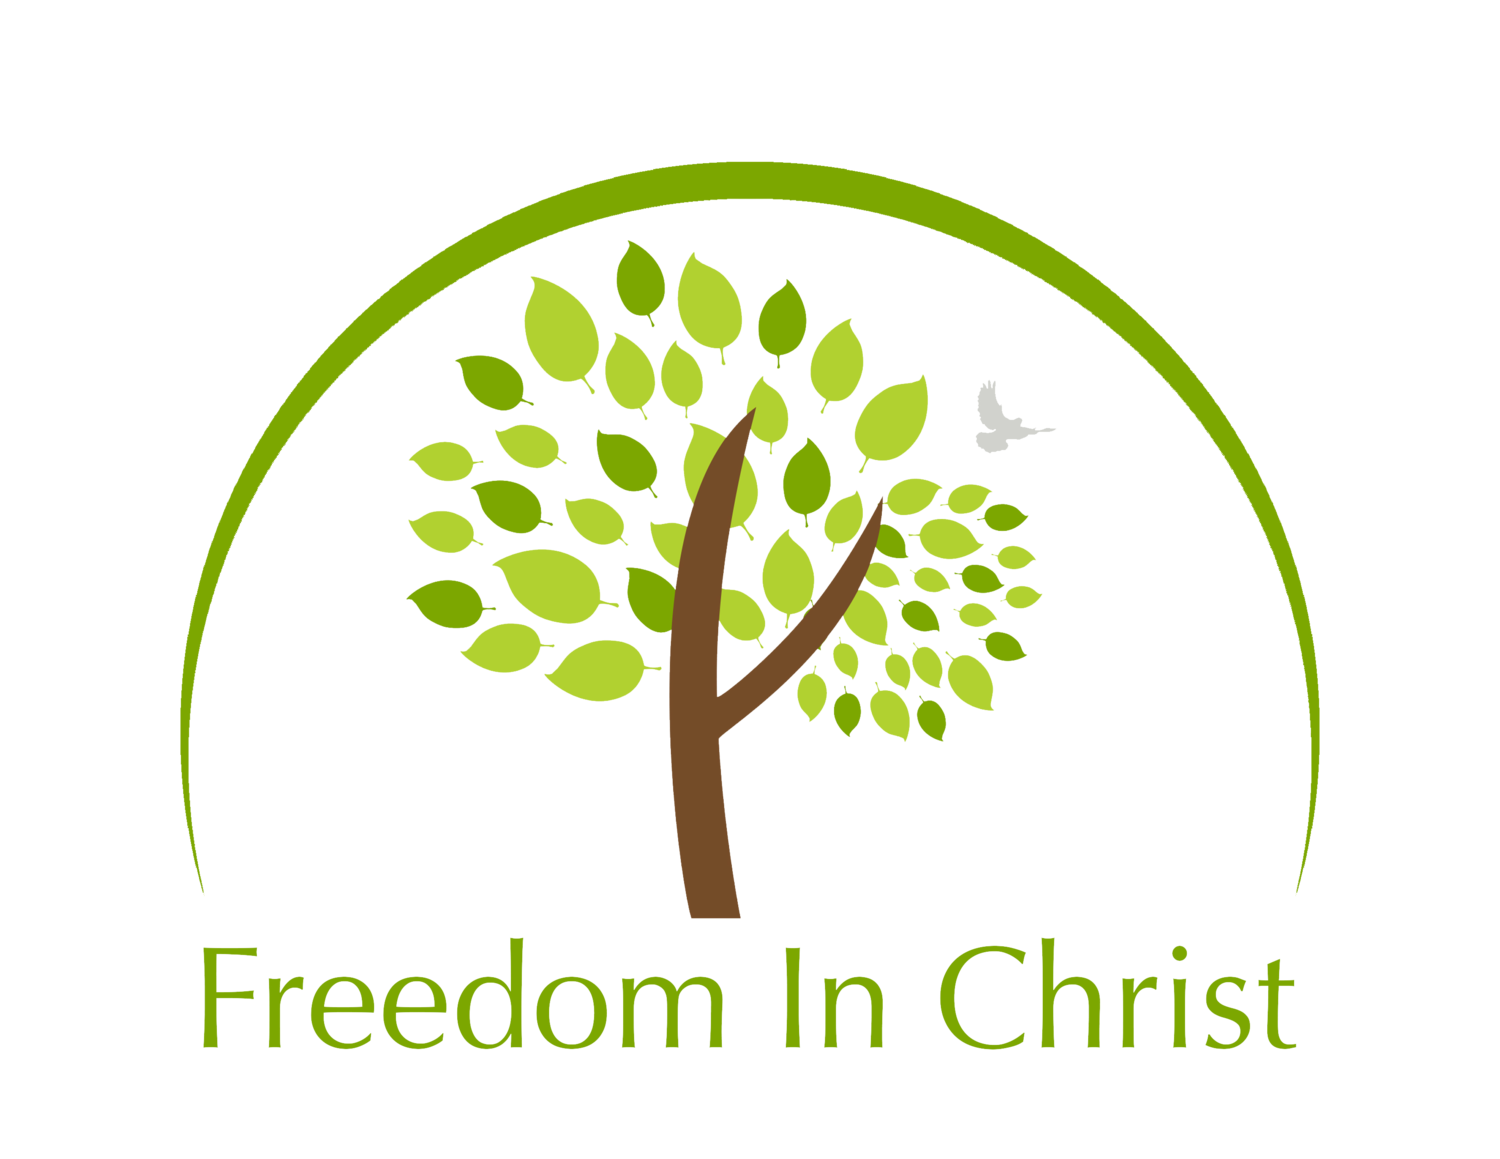 In christ clip art. Words clipart freedom